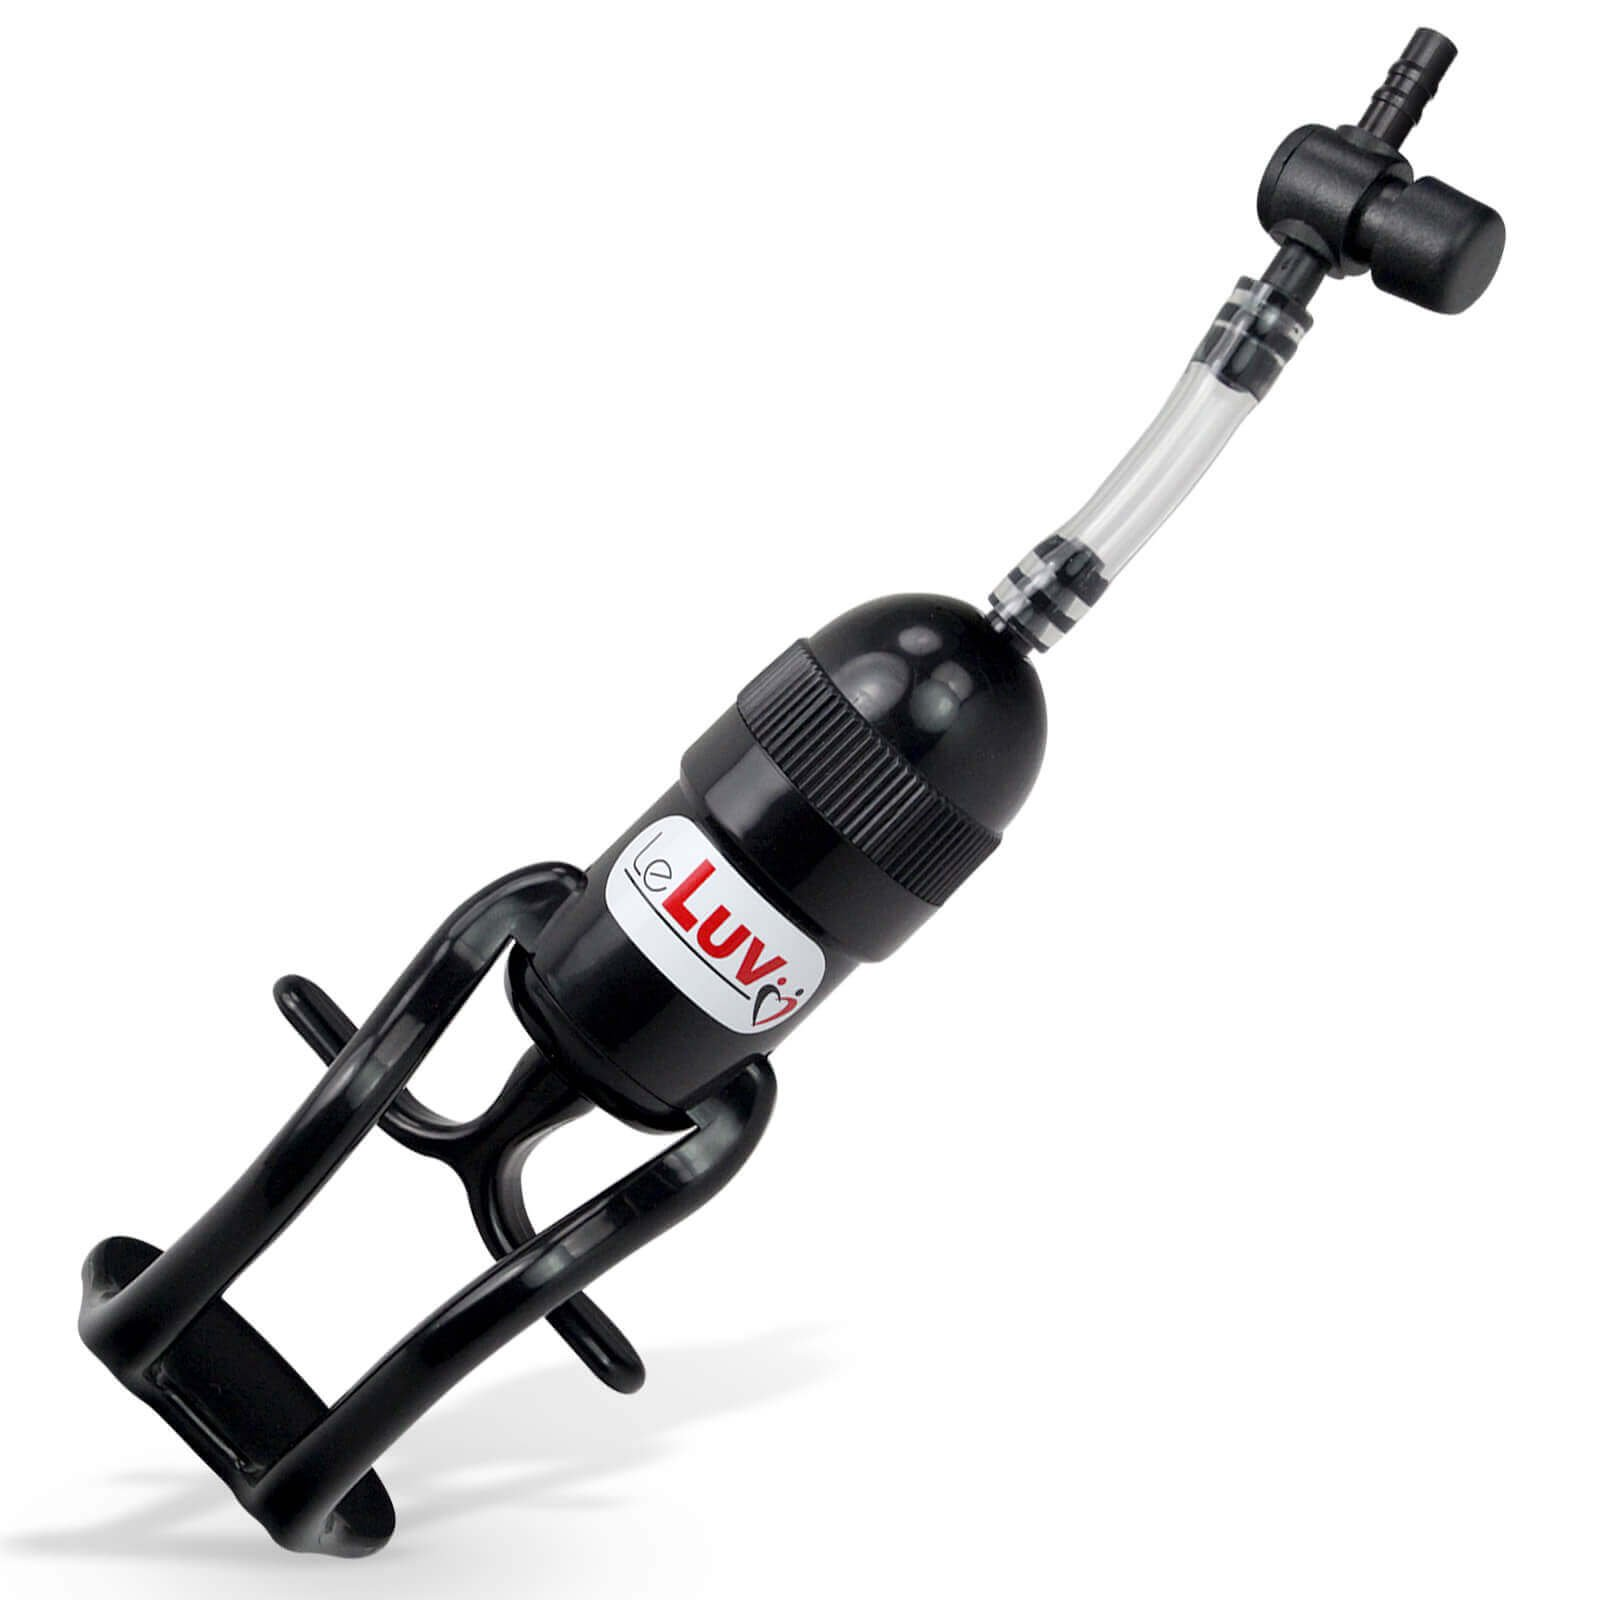 Reciprocating cock pump toys